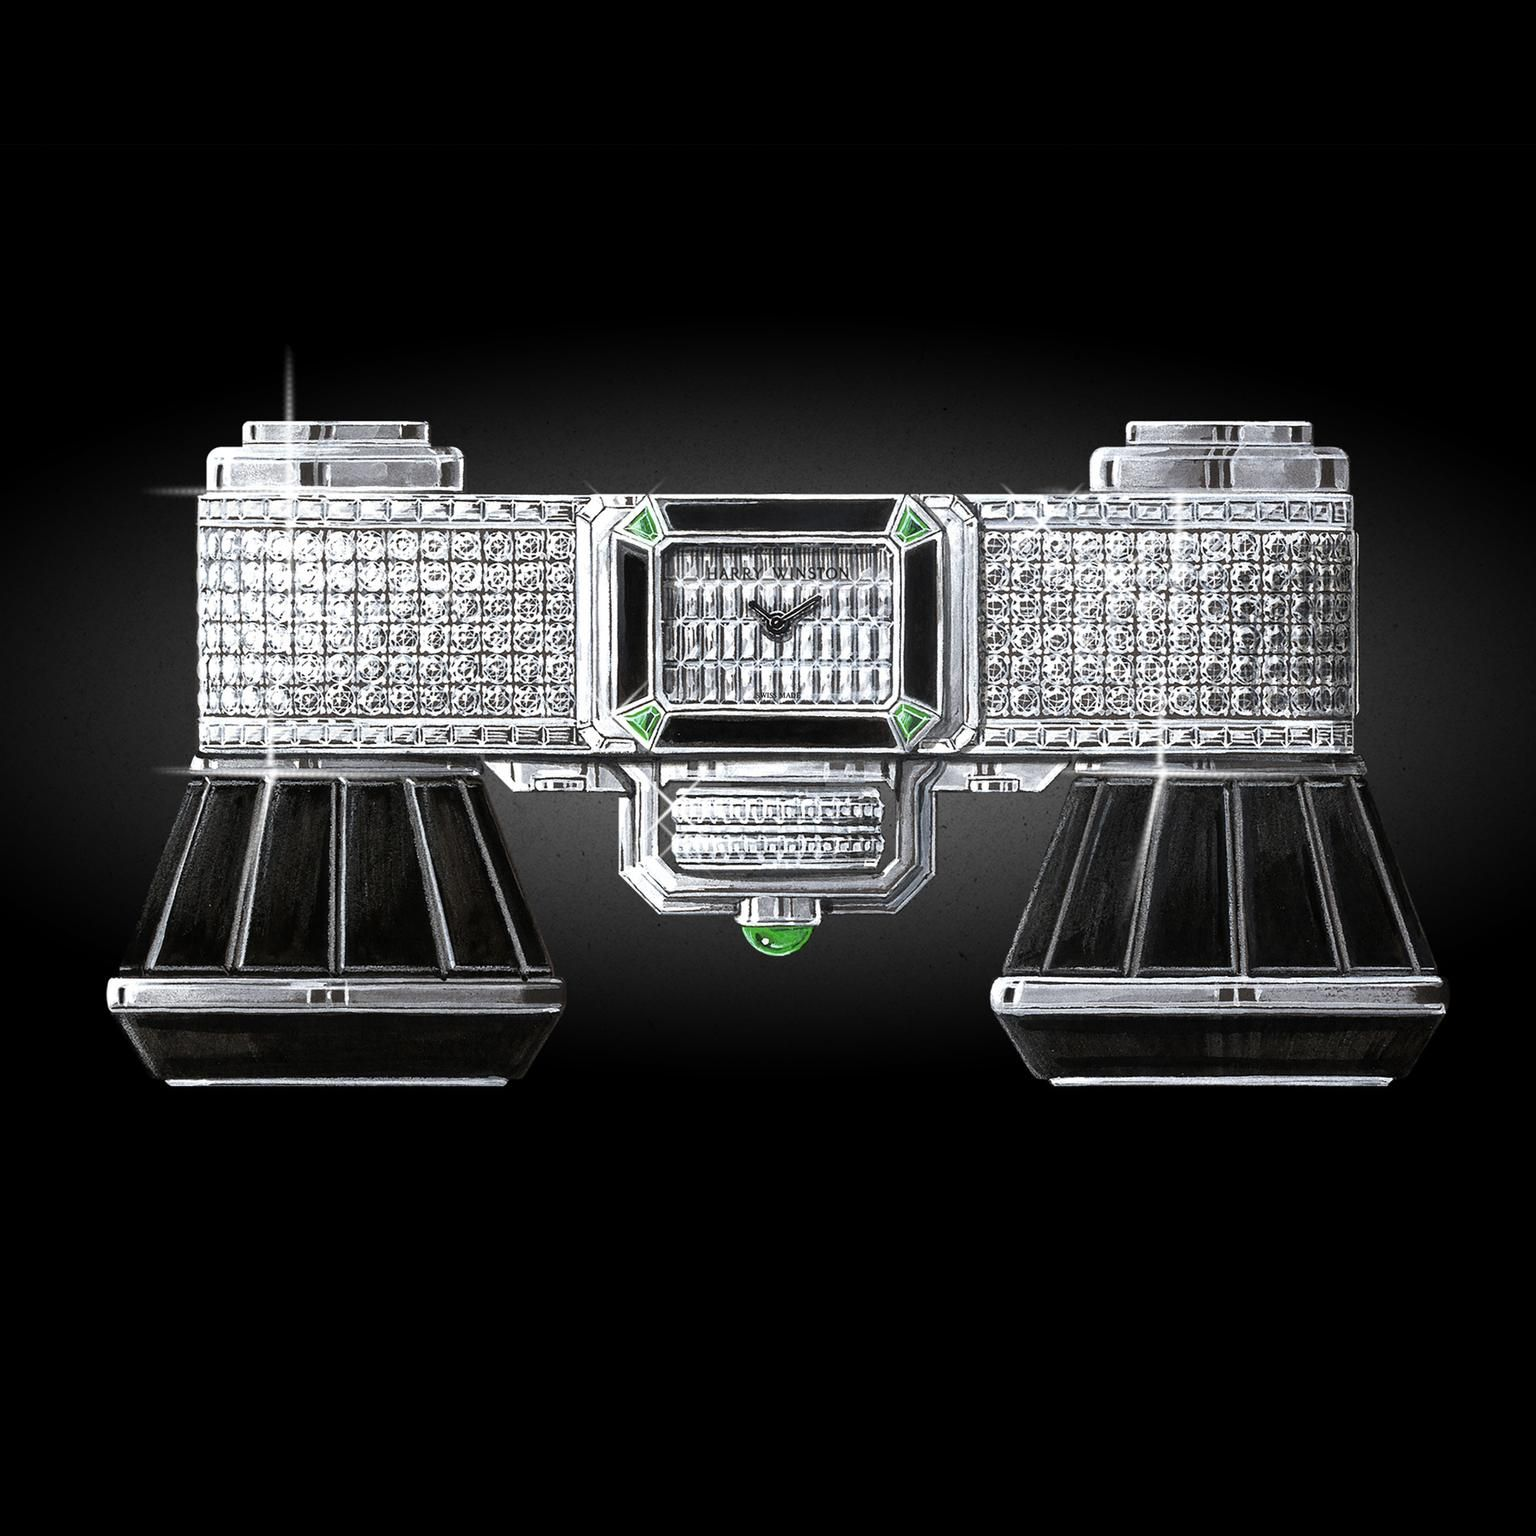 The Harry Winstone Opera glasses: set in white gold with black onyx, white diamonds and green emeralds. With a watch face in the centre with pave dial. For the high flyers with an operatic point to make: http://www.thejewelleryeditor.com/jewellery/article/harry-winston-broadway-glasses-opera-unveiled-baselworld/ #jewelry